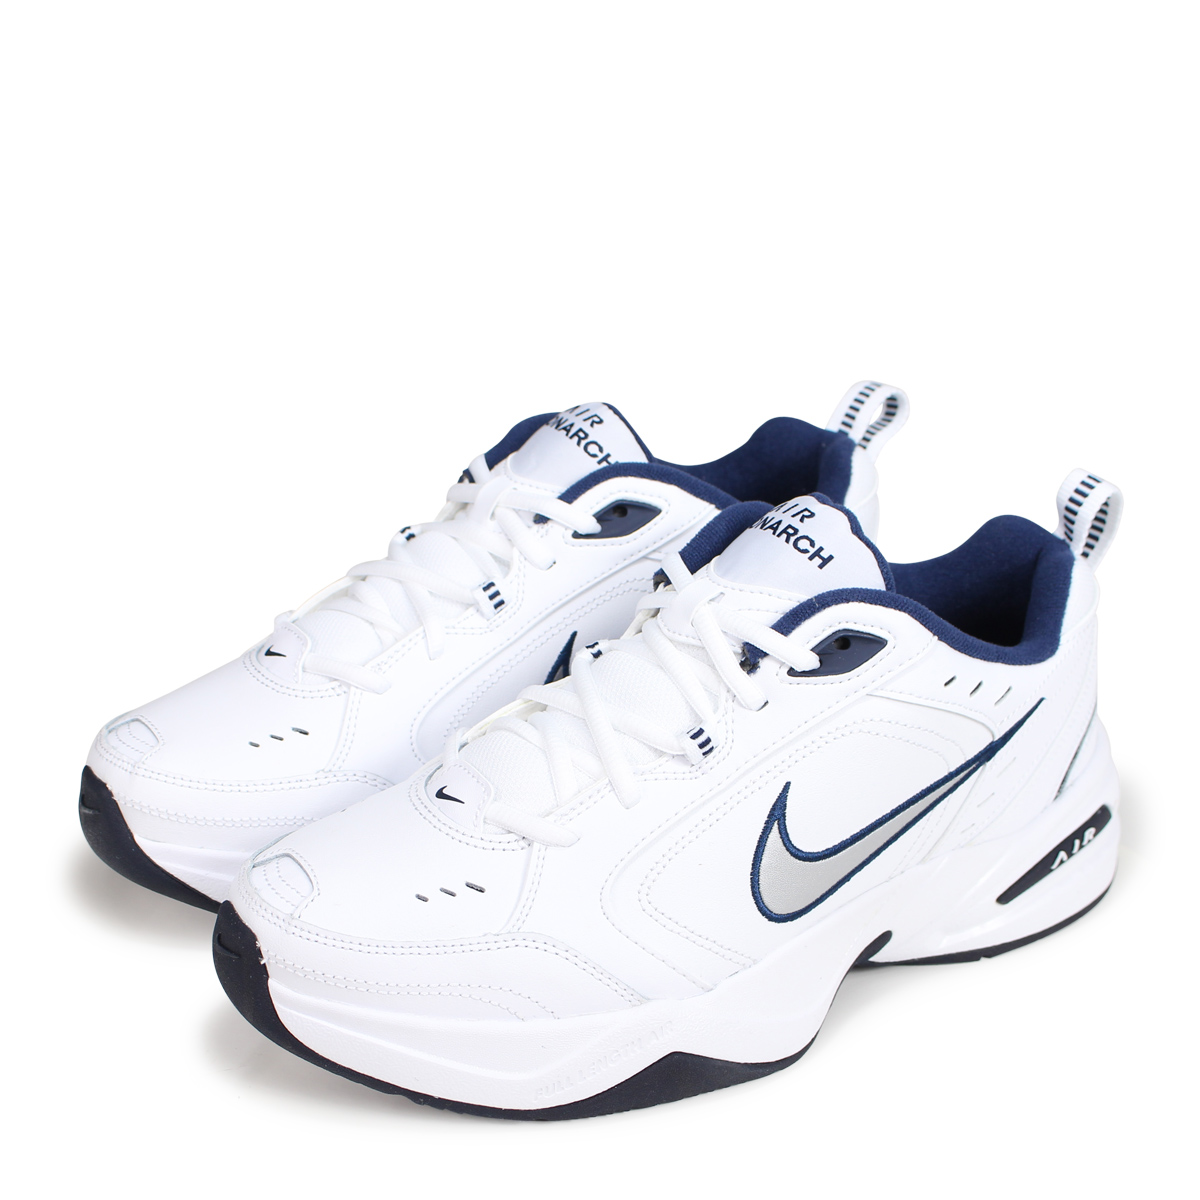 Nike NIKE エアモナーク 4 sneakers men AIR MONARCH IV DAD SHOES ダッドシューズ 415,445 102 white white [193]